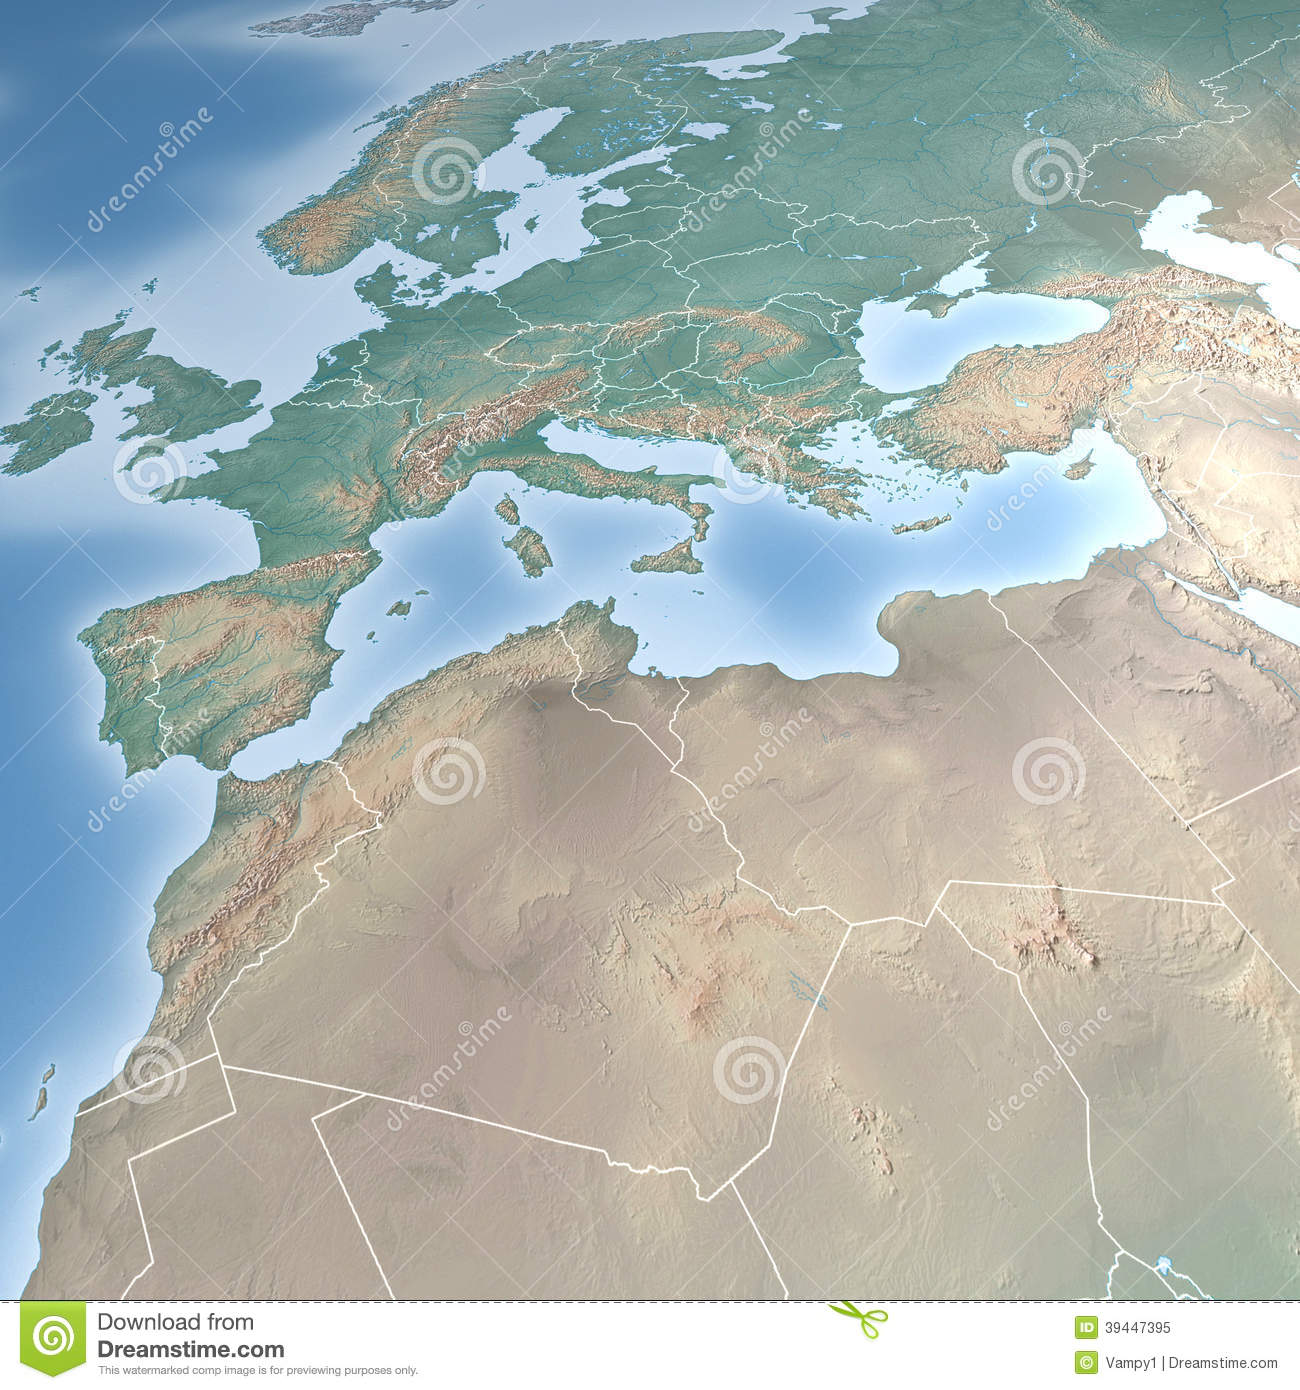 North Africa World Map.Map Of Europe And North Africa Stock Illustration Illustration Of